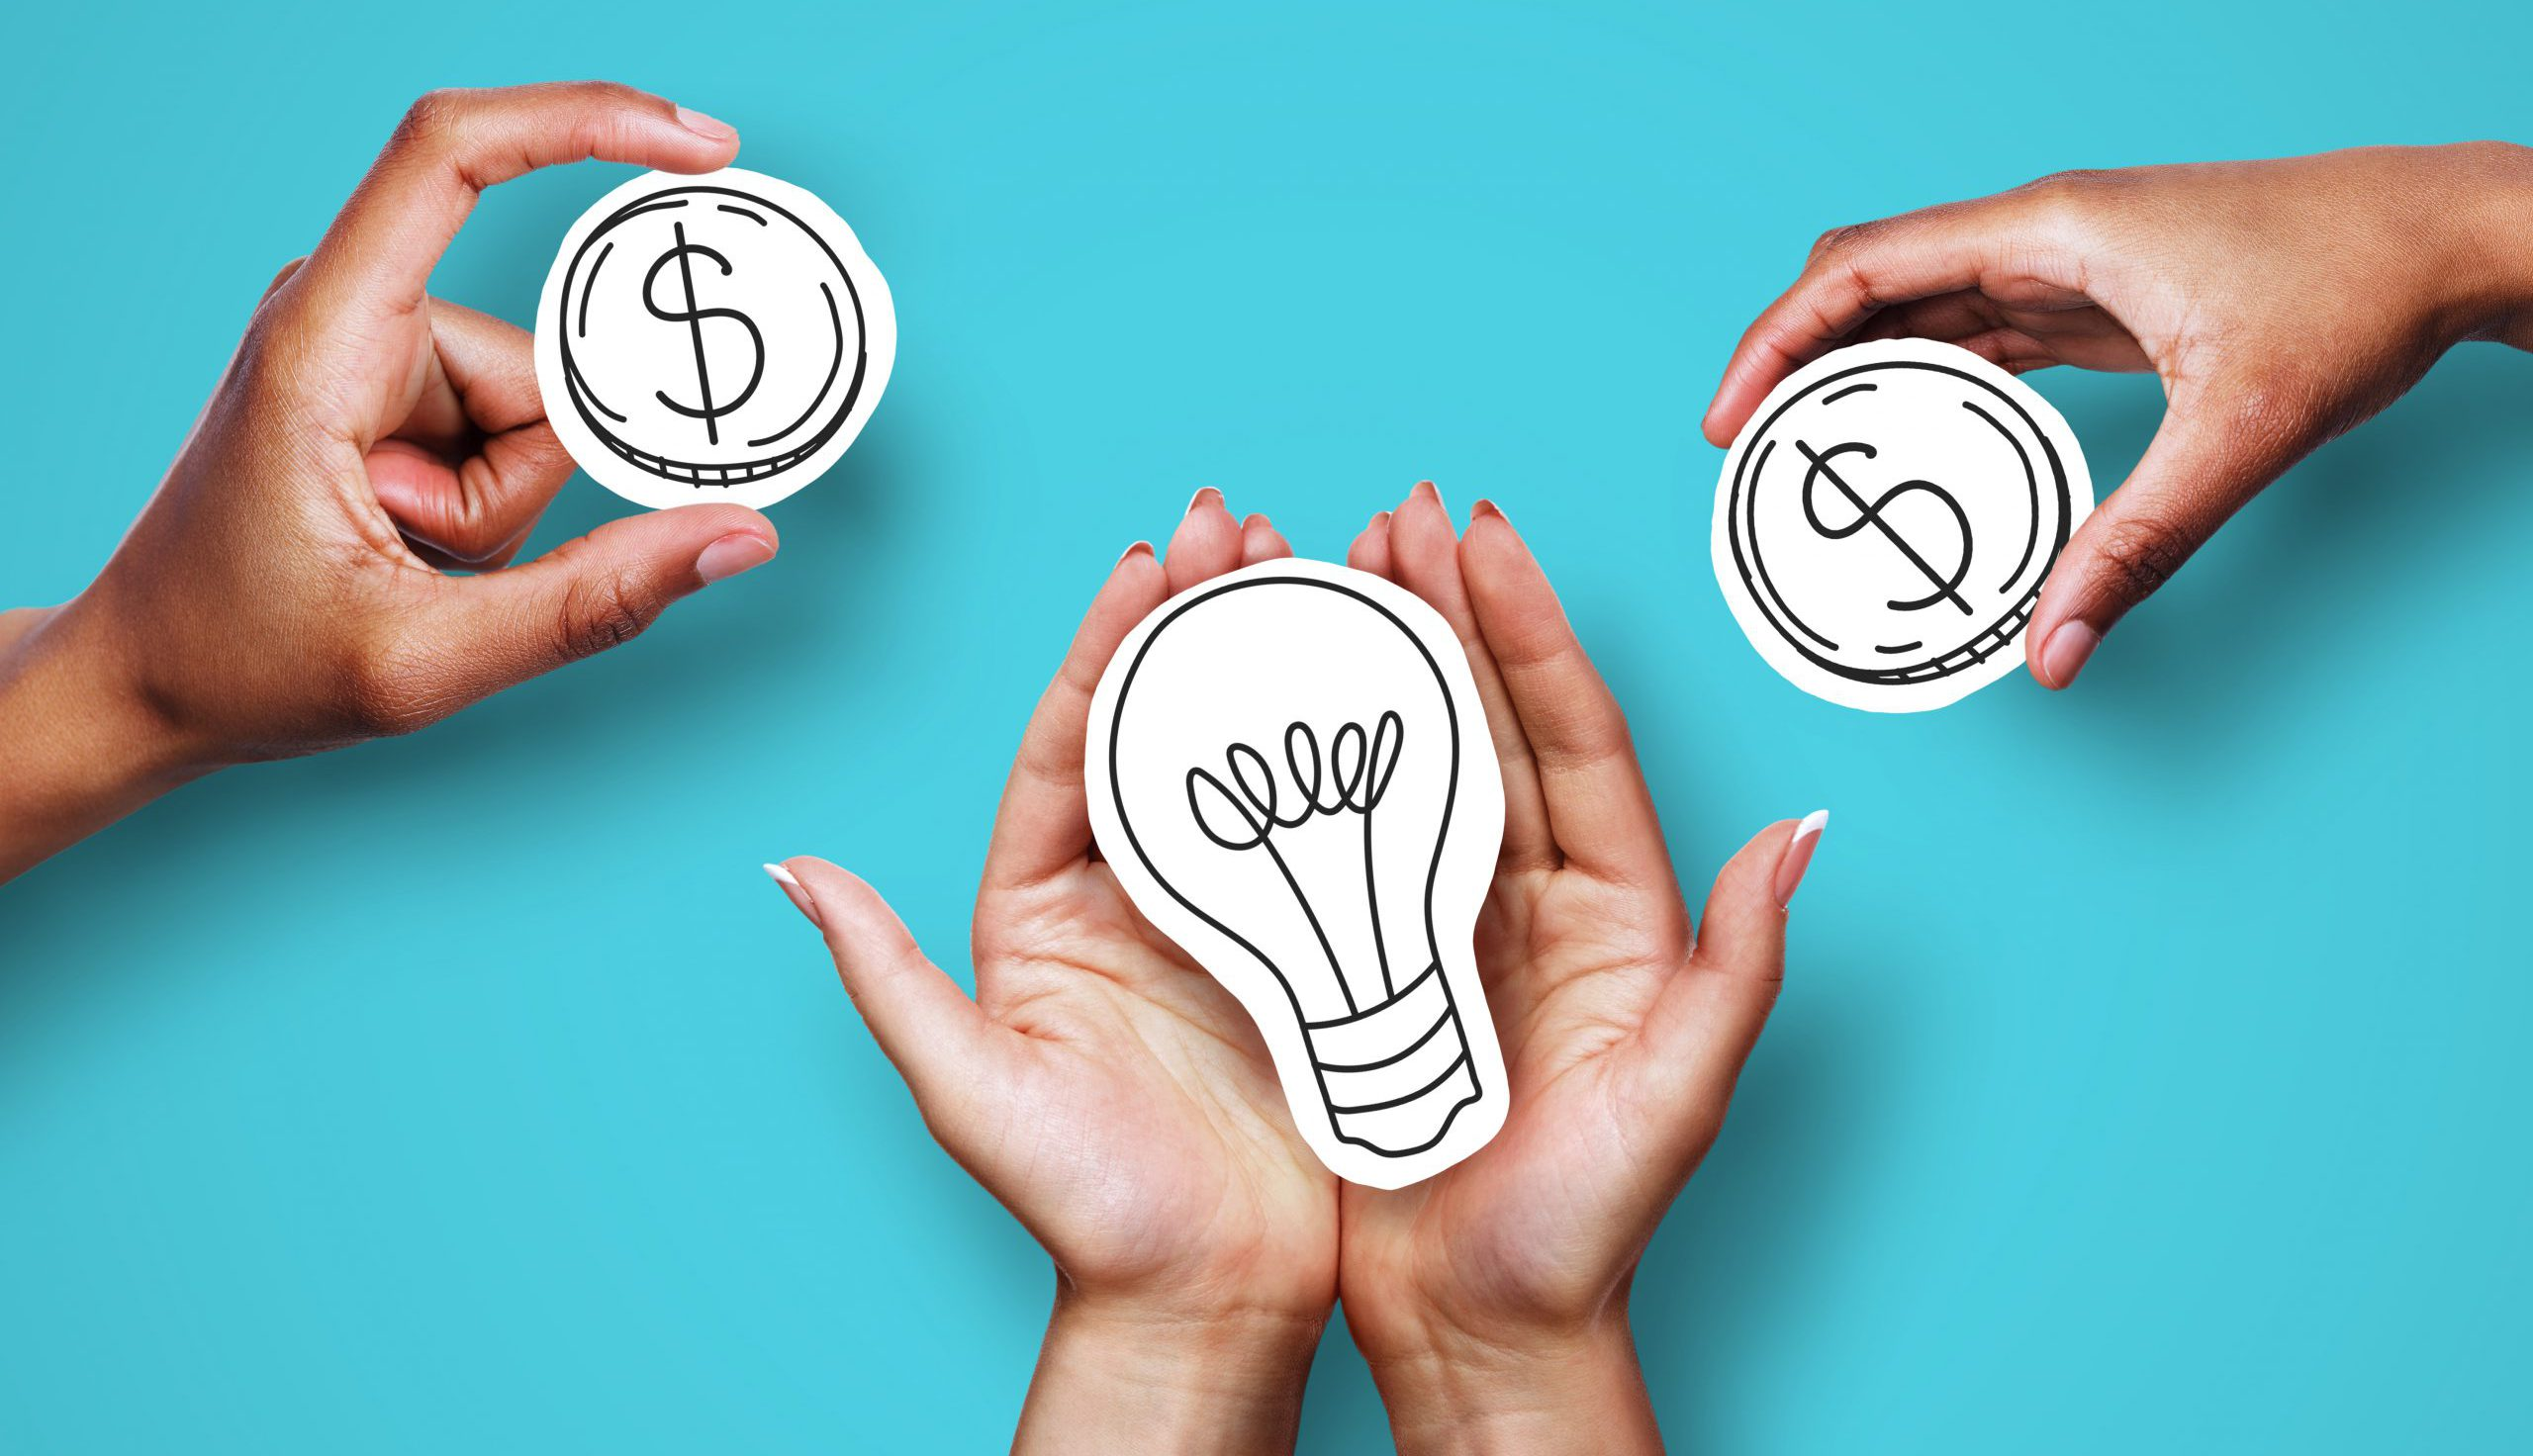 hands holding cutouts of dollar signs and a lightbulb